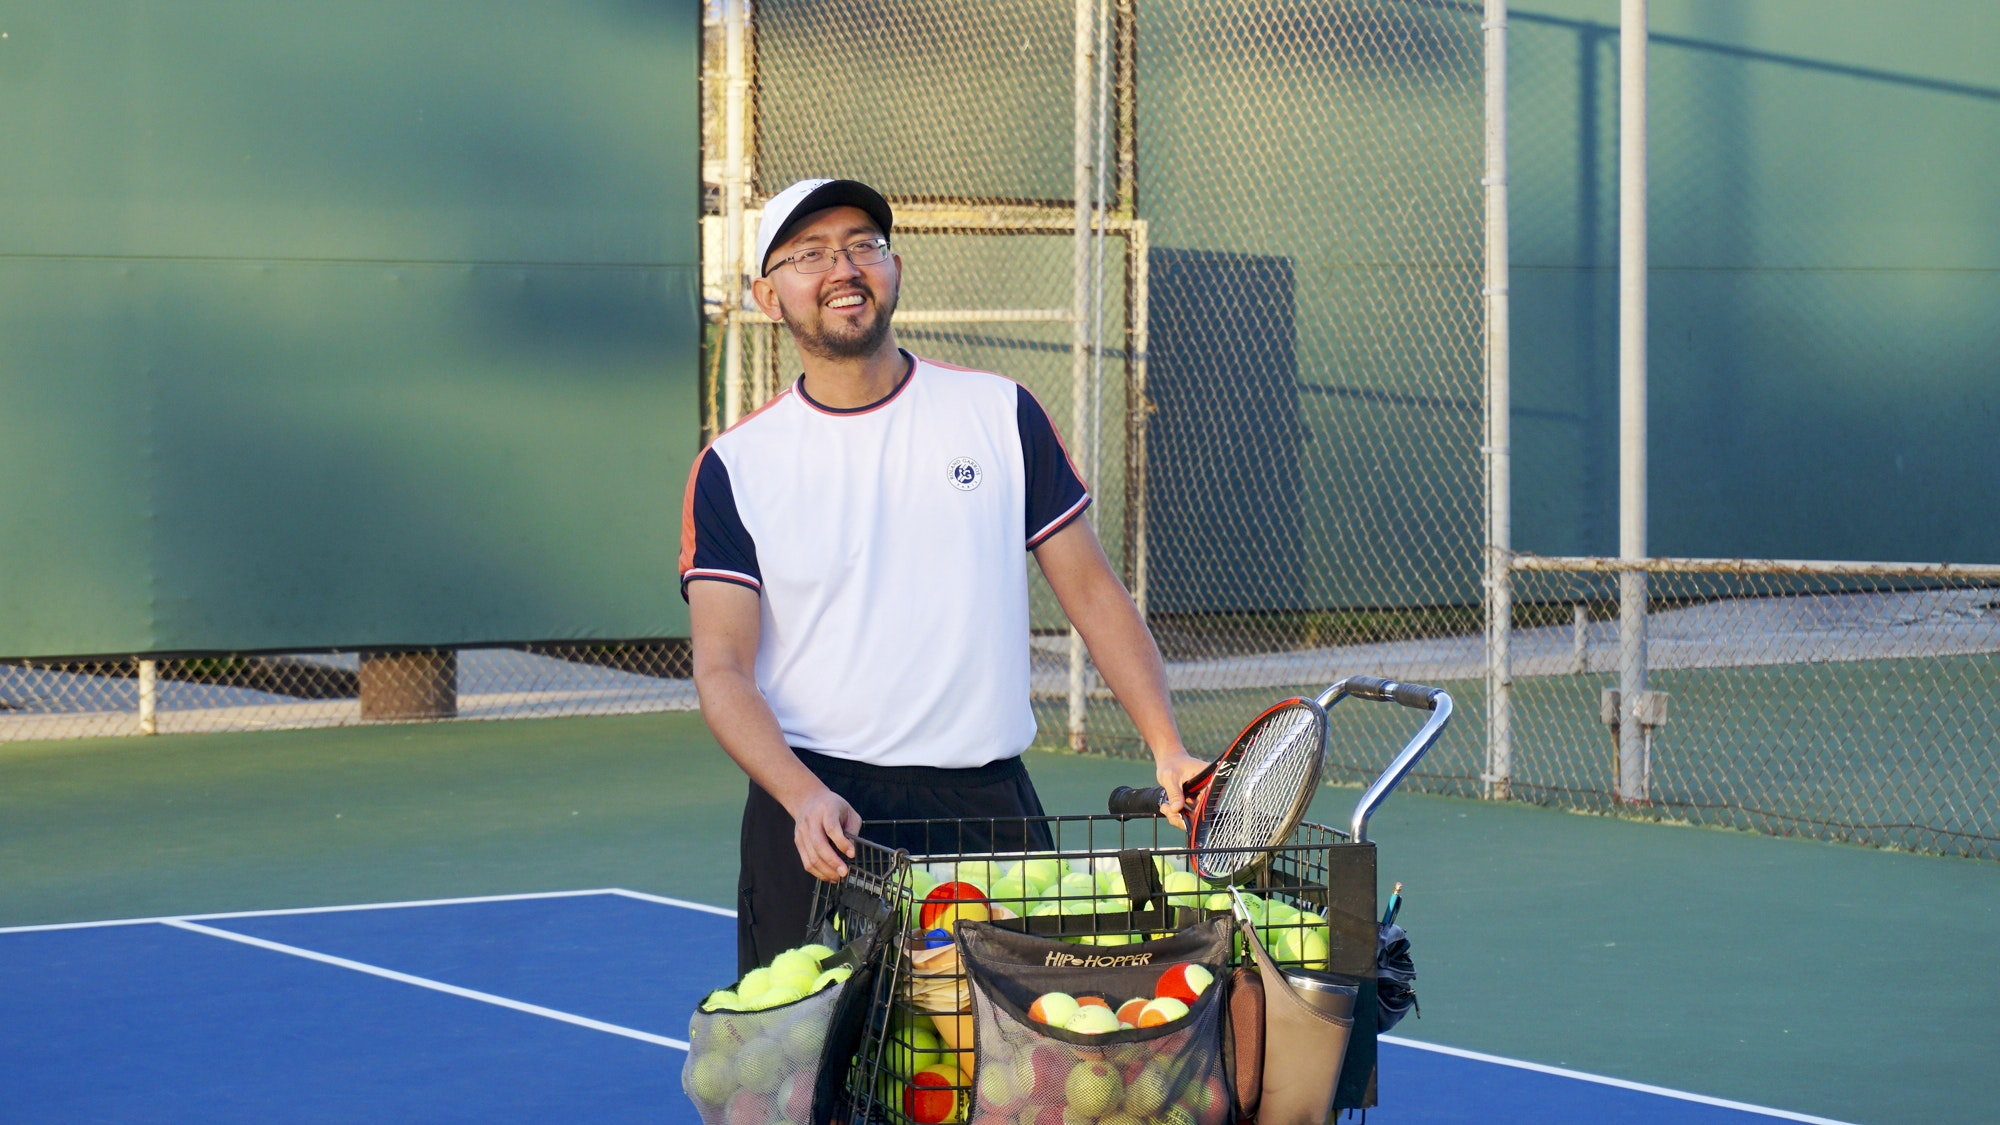 Hau N. teaches tennis lessons in San Diego, CA